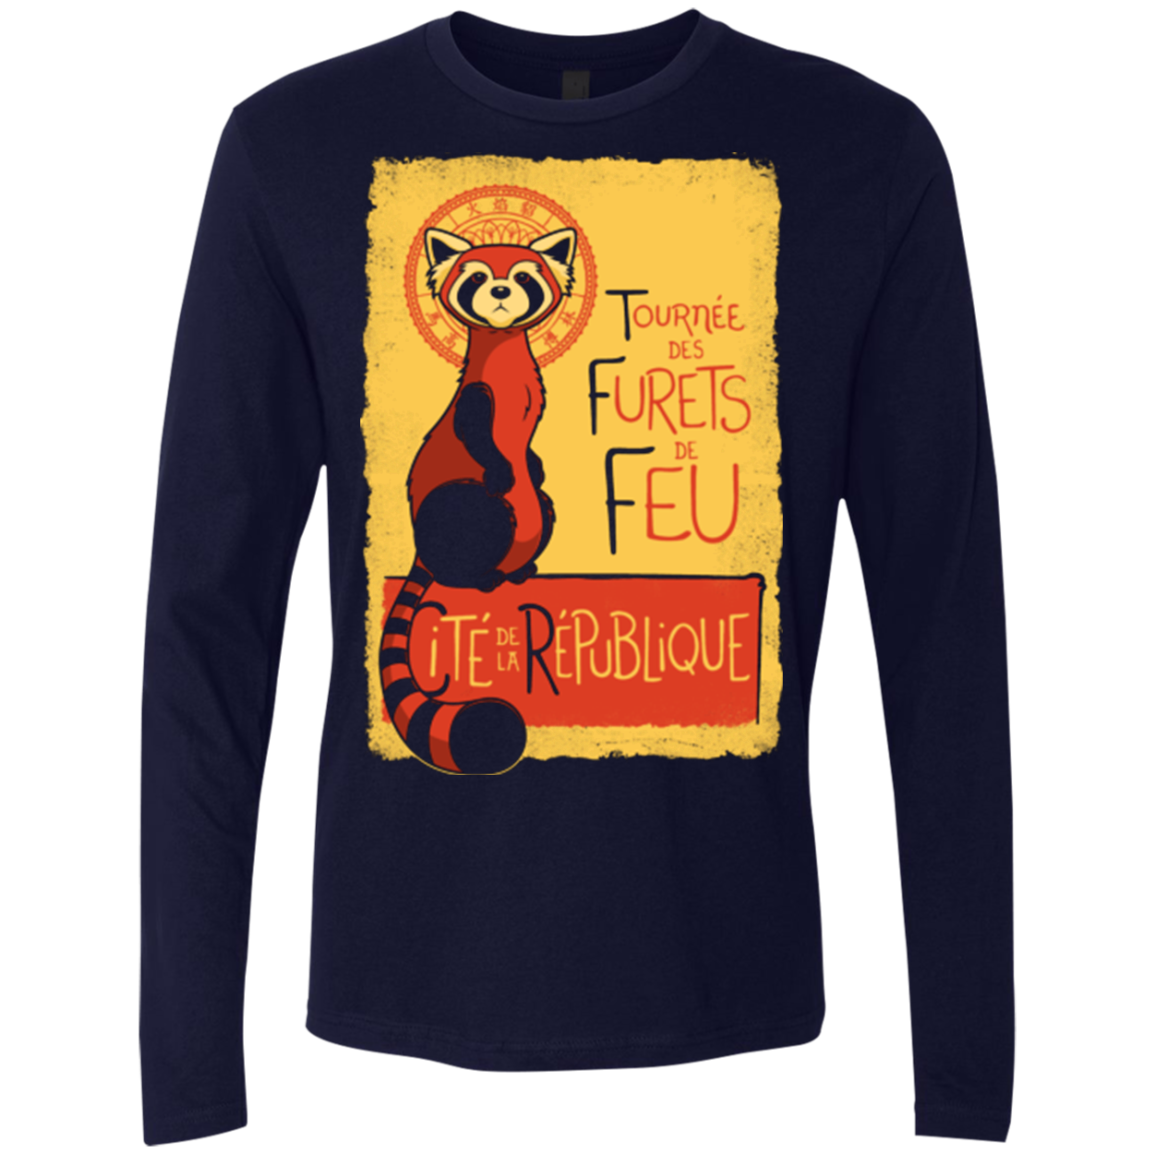 Les Furets de Feu Men's Premium Long Sleeve